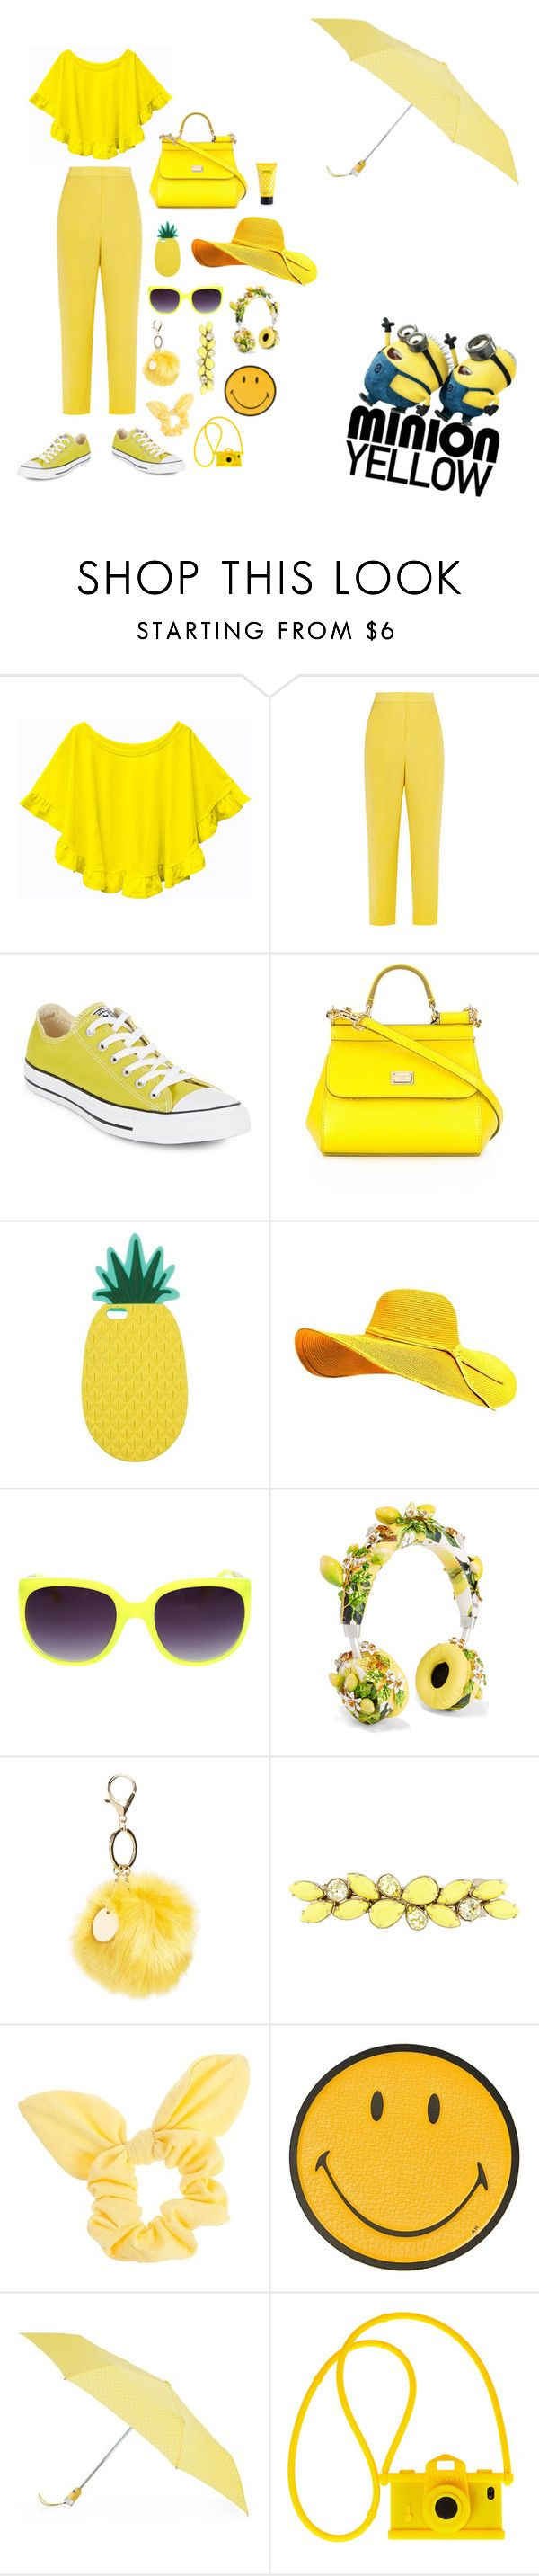 """Minion Yellow🍍😀"" by jellybean-12 ❤ liked on Polyvore featuring Issa, Converse, Dolce&Gabbana, Miss Selfridge, Topshop, Valentino, Dorothy Perkins, Anya Hindmarch, Totes and Moschino"